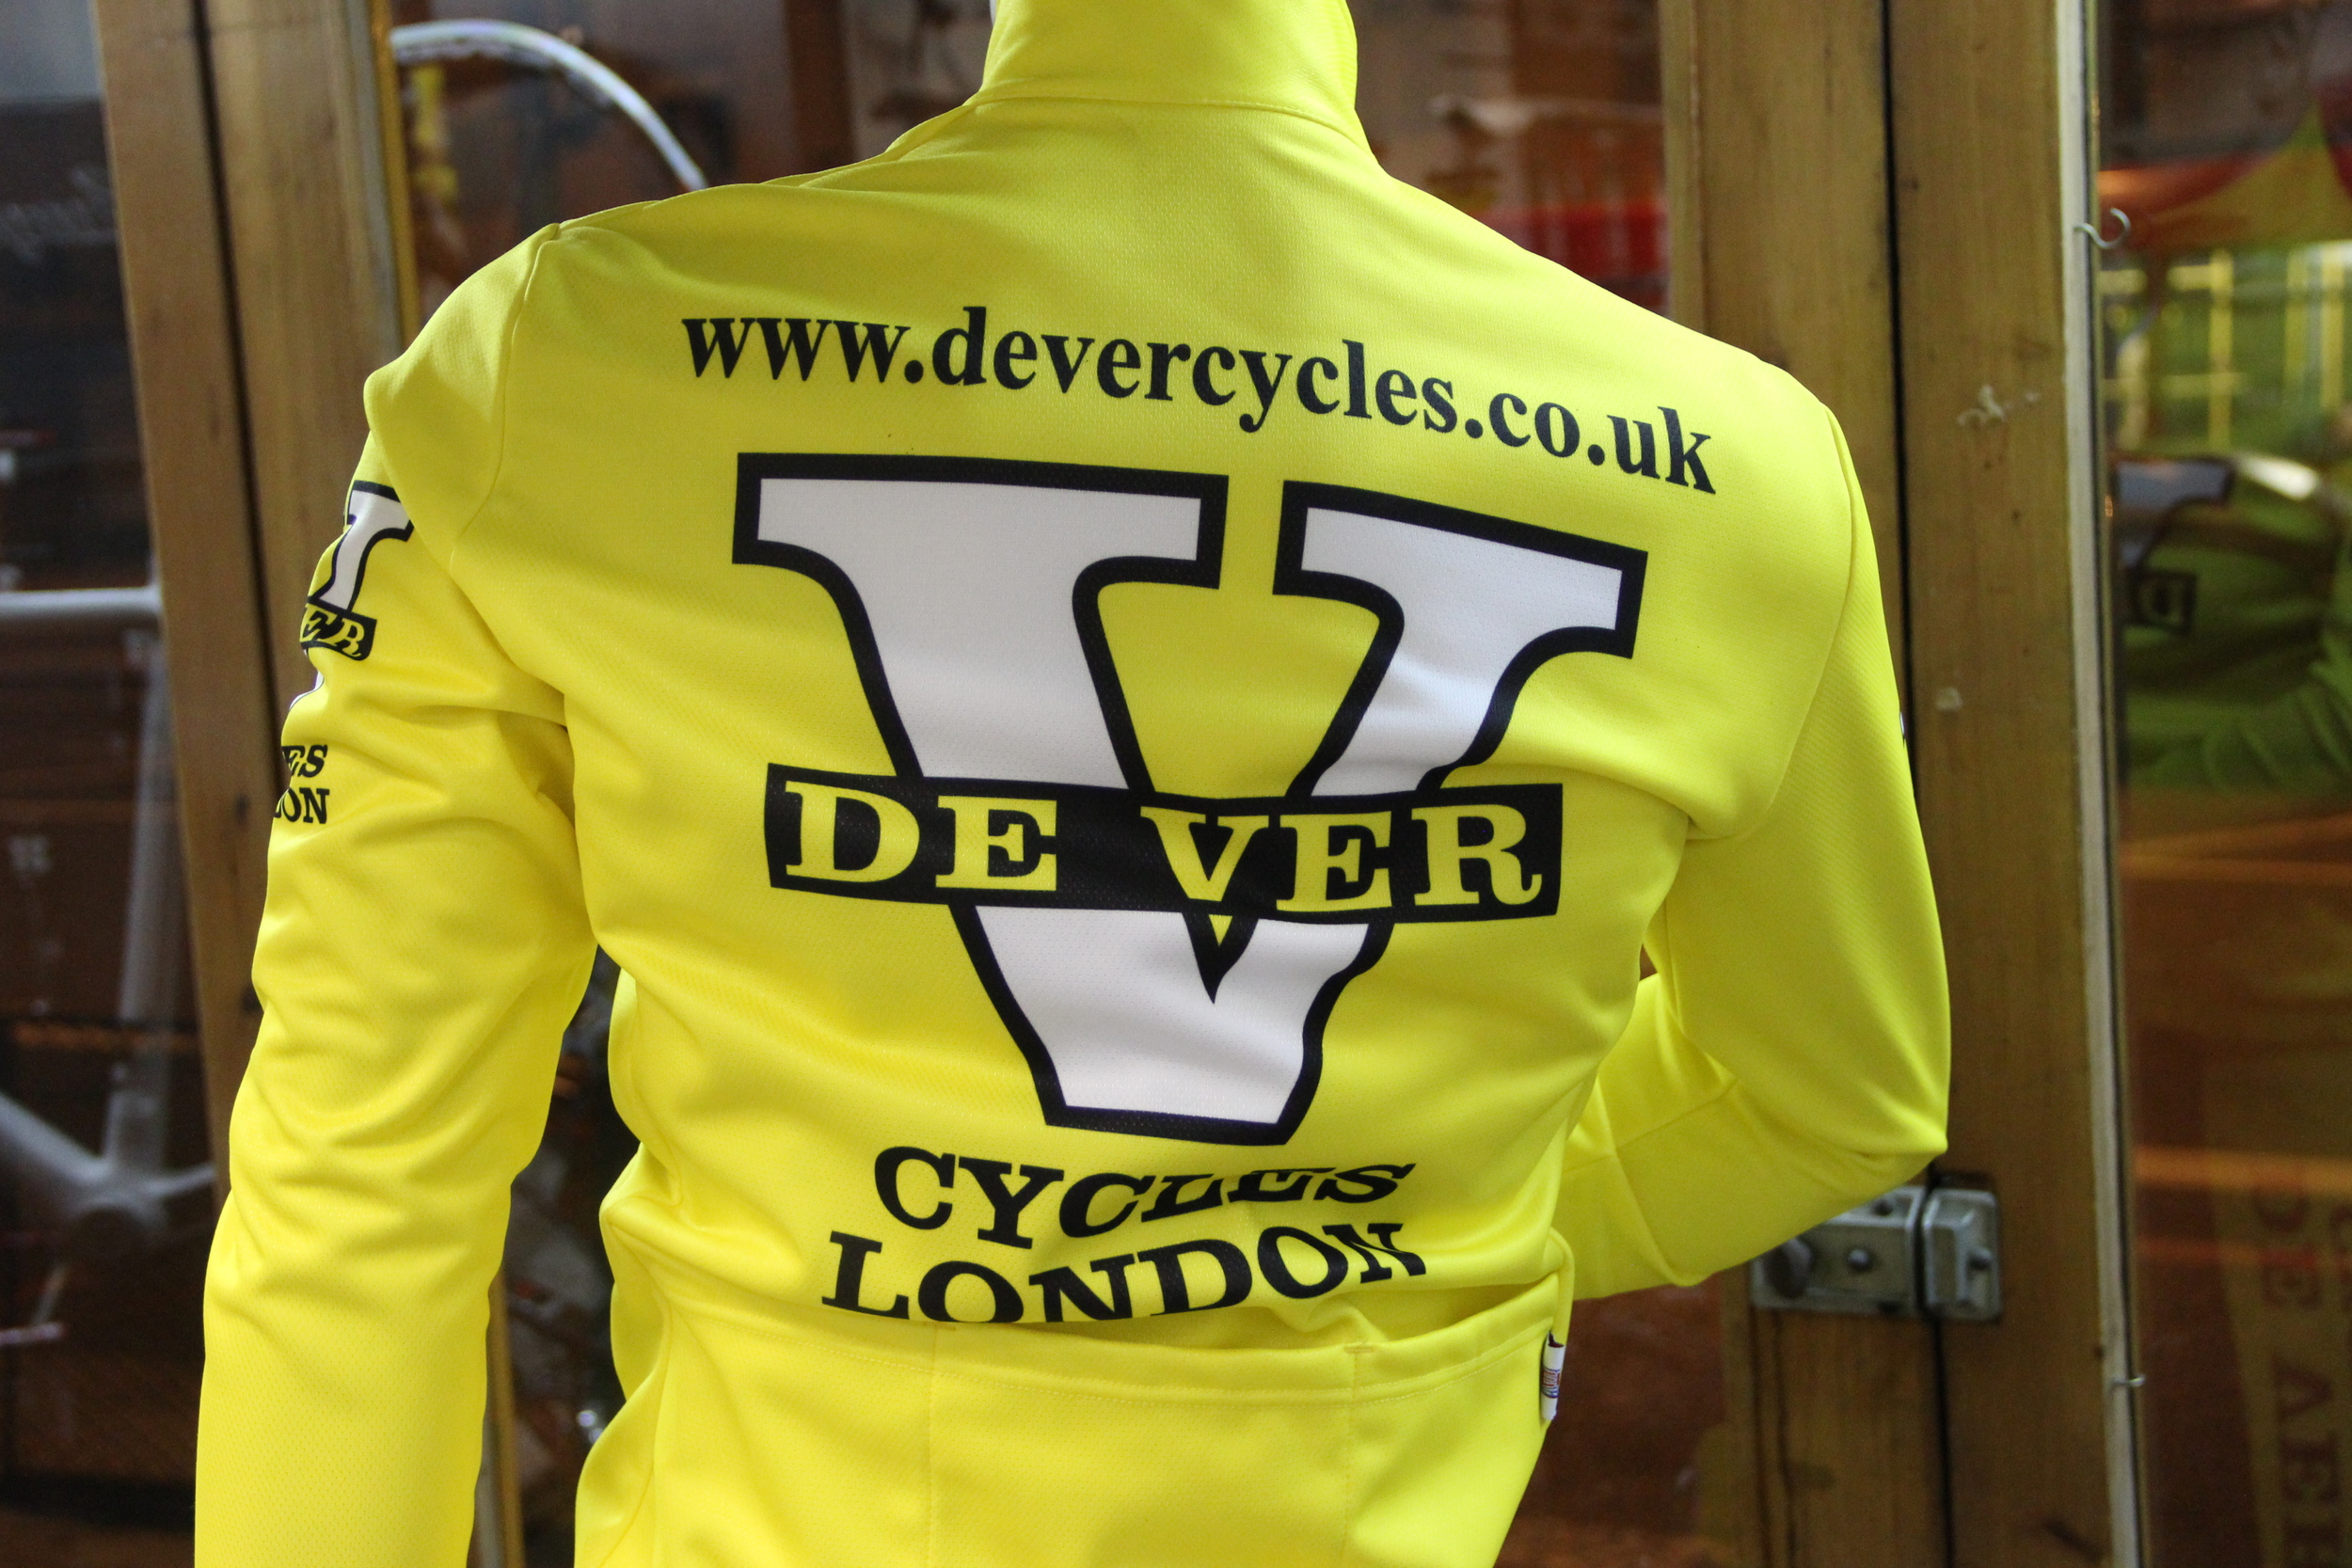 The maillot jaunes for De Ver's cycle club riders